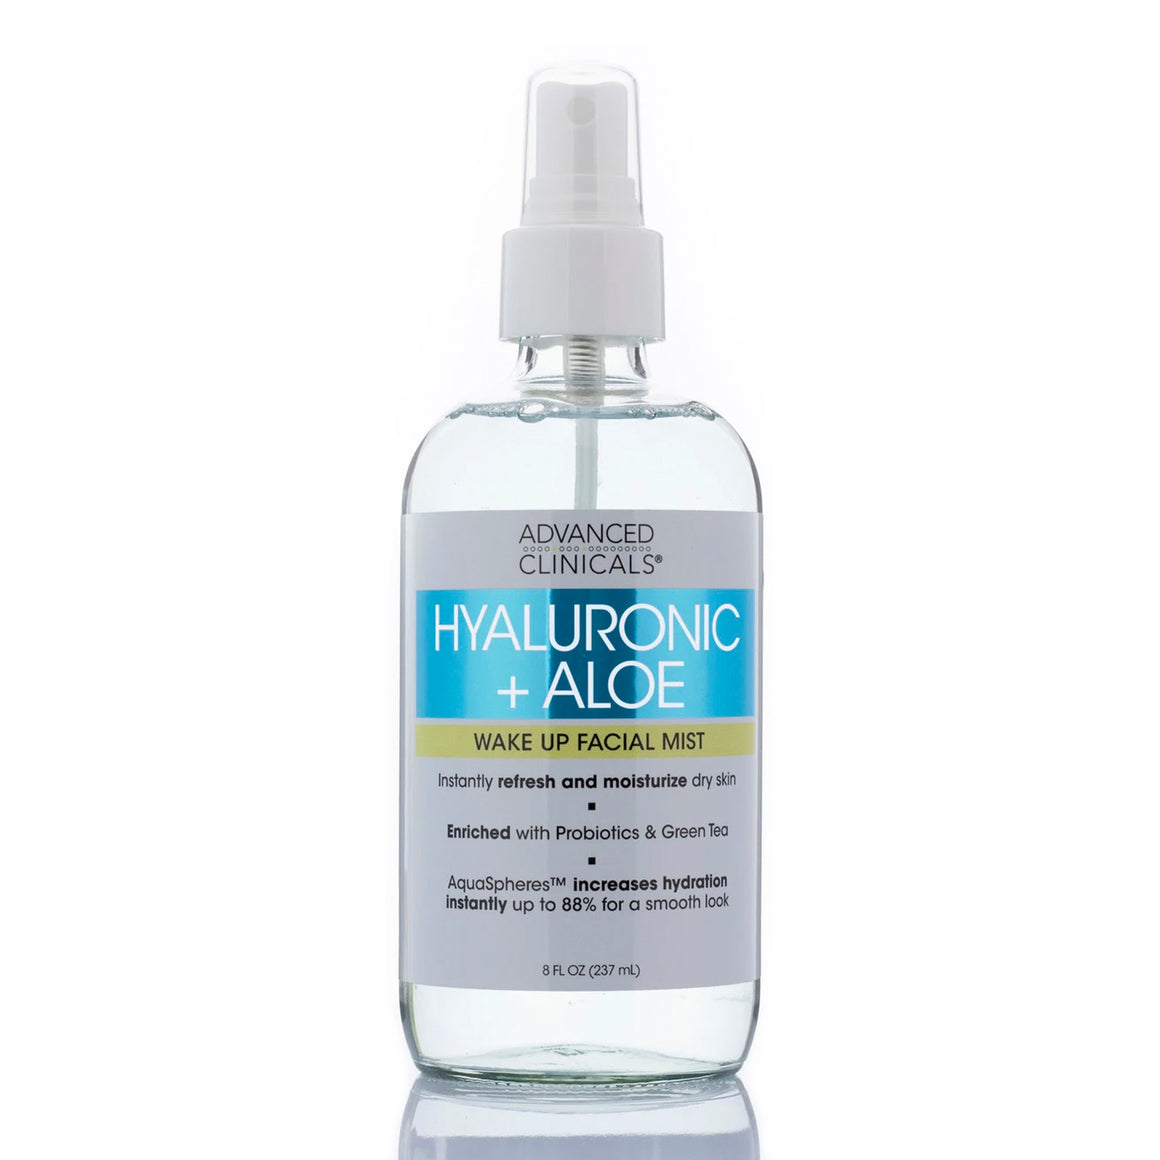 Hyaluronic + Aloe Wake Up Facial Mist 8oz